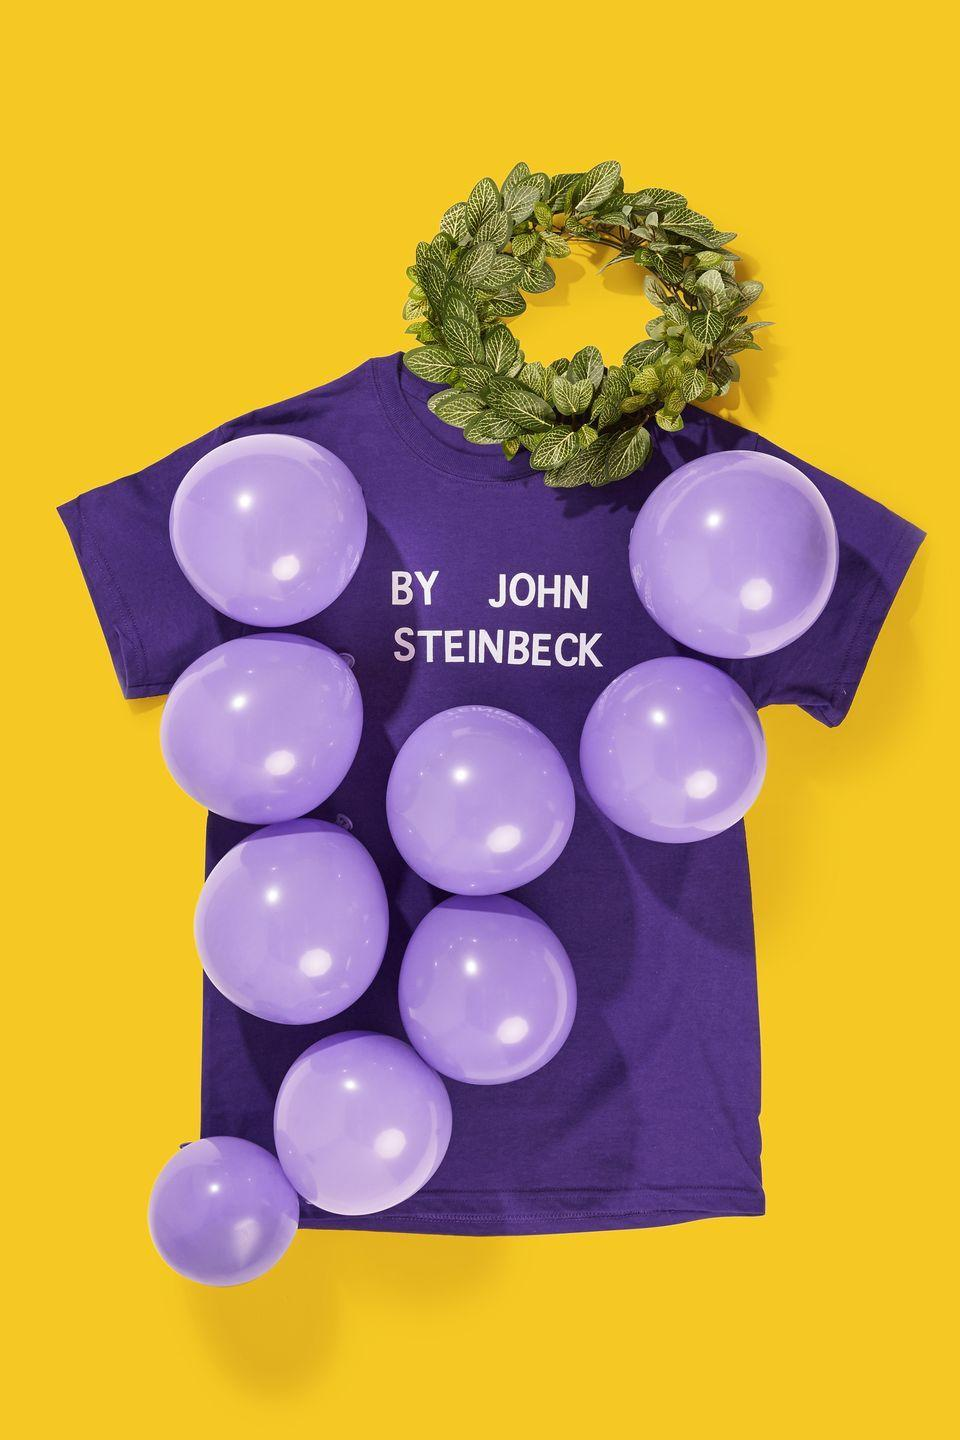 """<p>Book lovers, this is the costume for you. Spell out """"By John Steinbeck"""" on a purple t-shirt with white adhesive letters, then safety pin purple balloons onto the shirt. Create a vine crown by hot-gluing faux vines together to complete your look. </p><p><a class=""""link rapid-noclick-resp"""" href=""""https://www.amazon.com/Chenkou-Craft-Artificial-Foliage-Garland/dp/B01EROCCEQ?tag=syn-yahoo-20&ascsubtag=%5Bartid%7C10070.g.490%5Bsrc%7Cyahoo-us"""" rel=""""nofollow noopener"""" target=""""_blank"""" data-ylk=""""slk:SHOP FAKE VINE FOLIAGE"""">SHOP FAKE VINE FOLIAGE</a> </p>"""